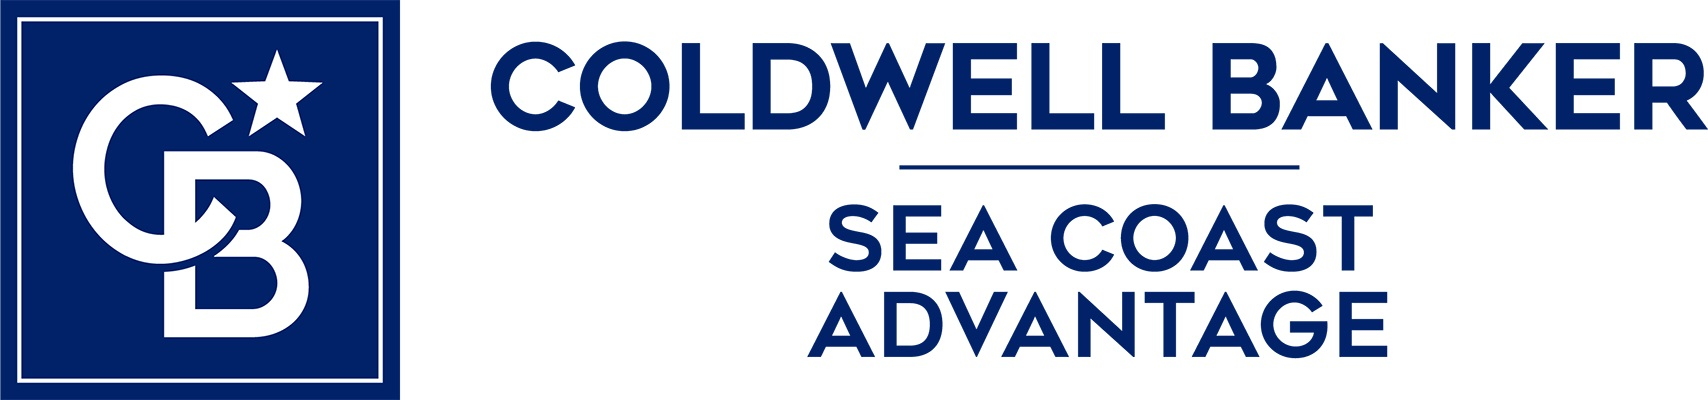 Patricia Wisdo - Coldwell Banker Sea Coast Advantage Realty Logo